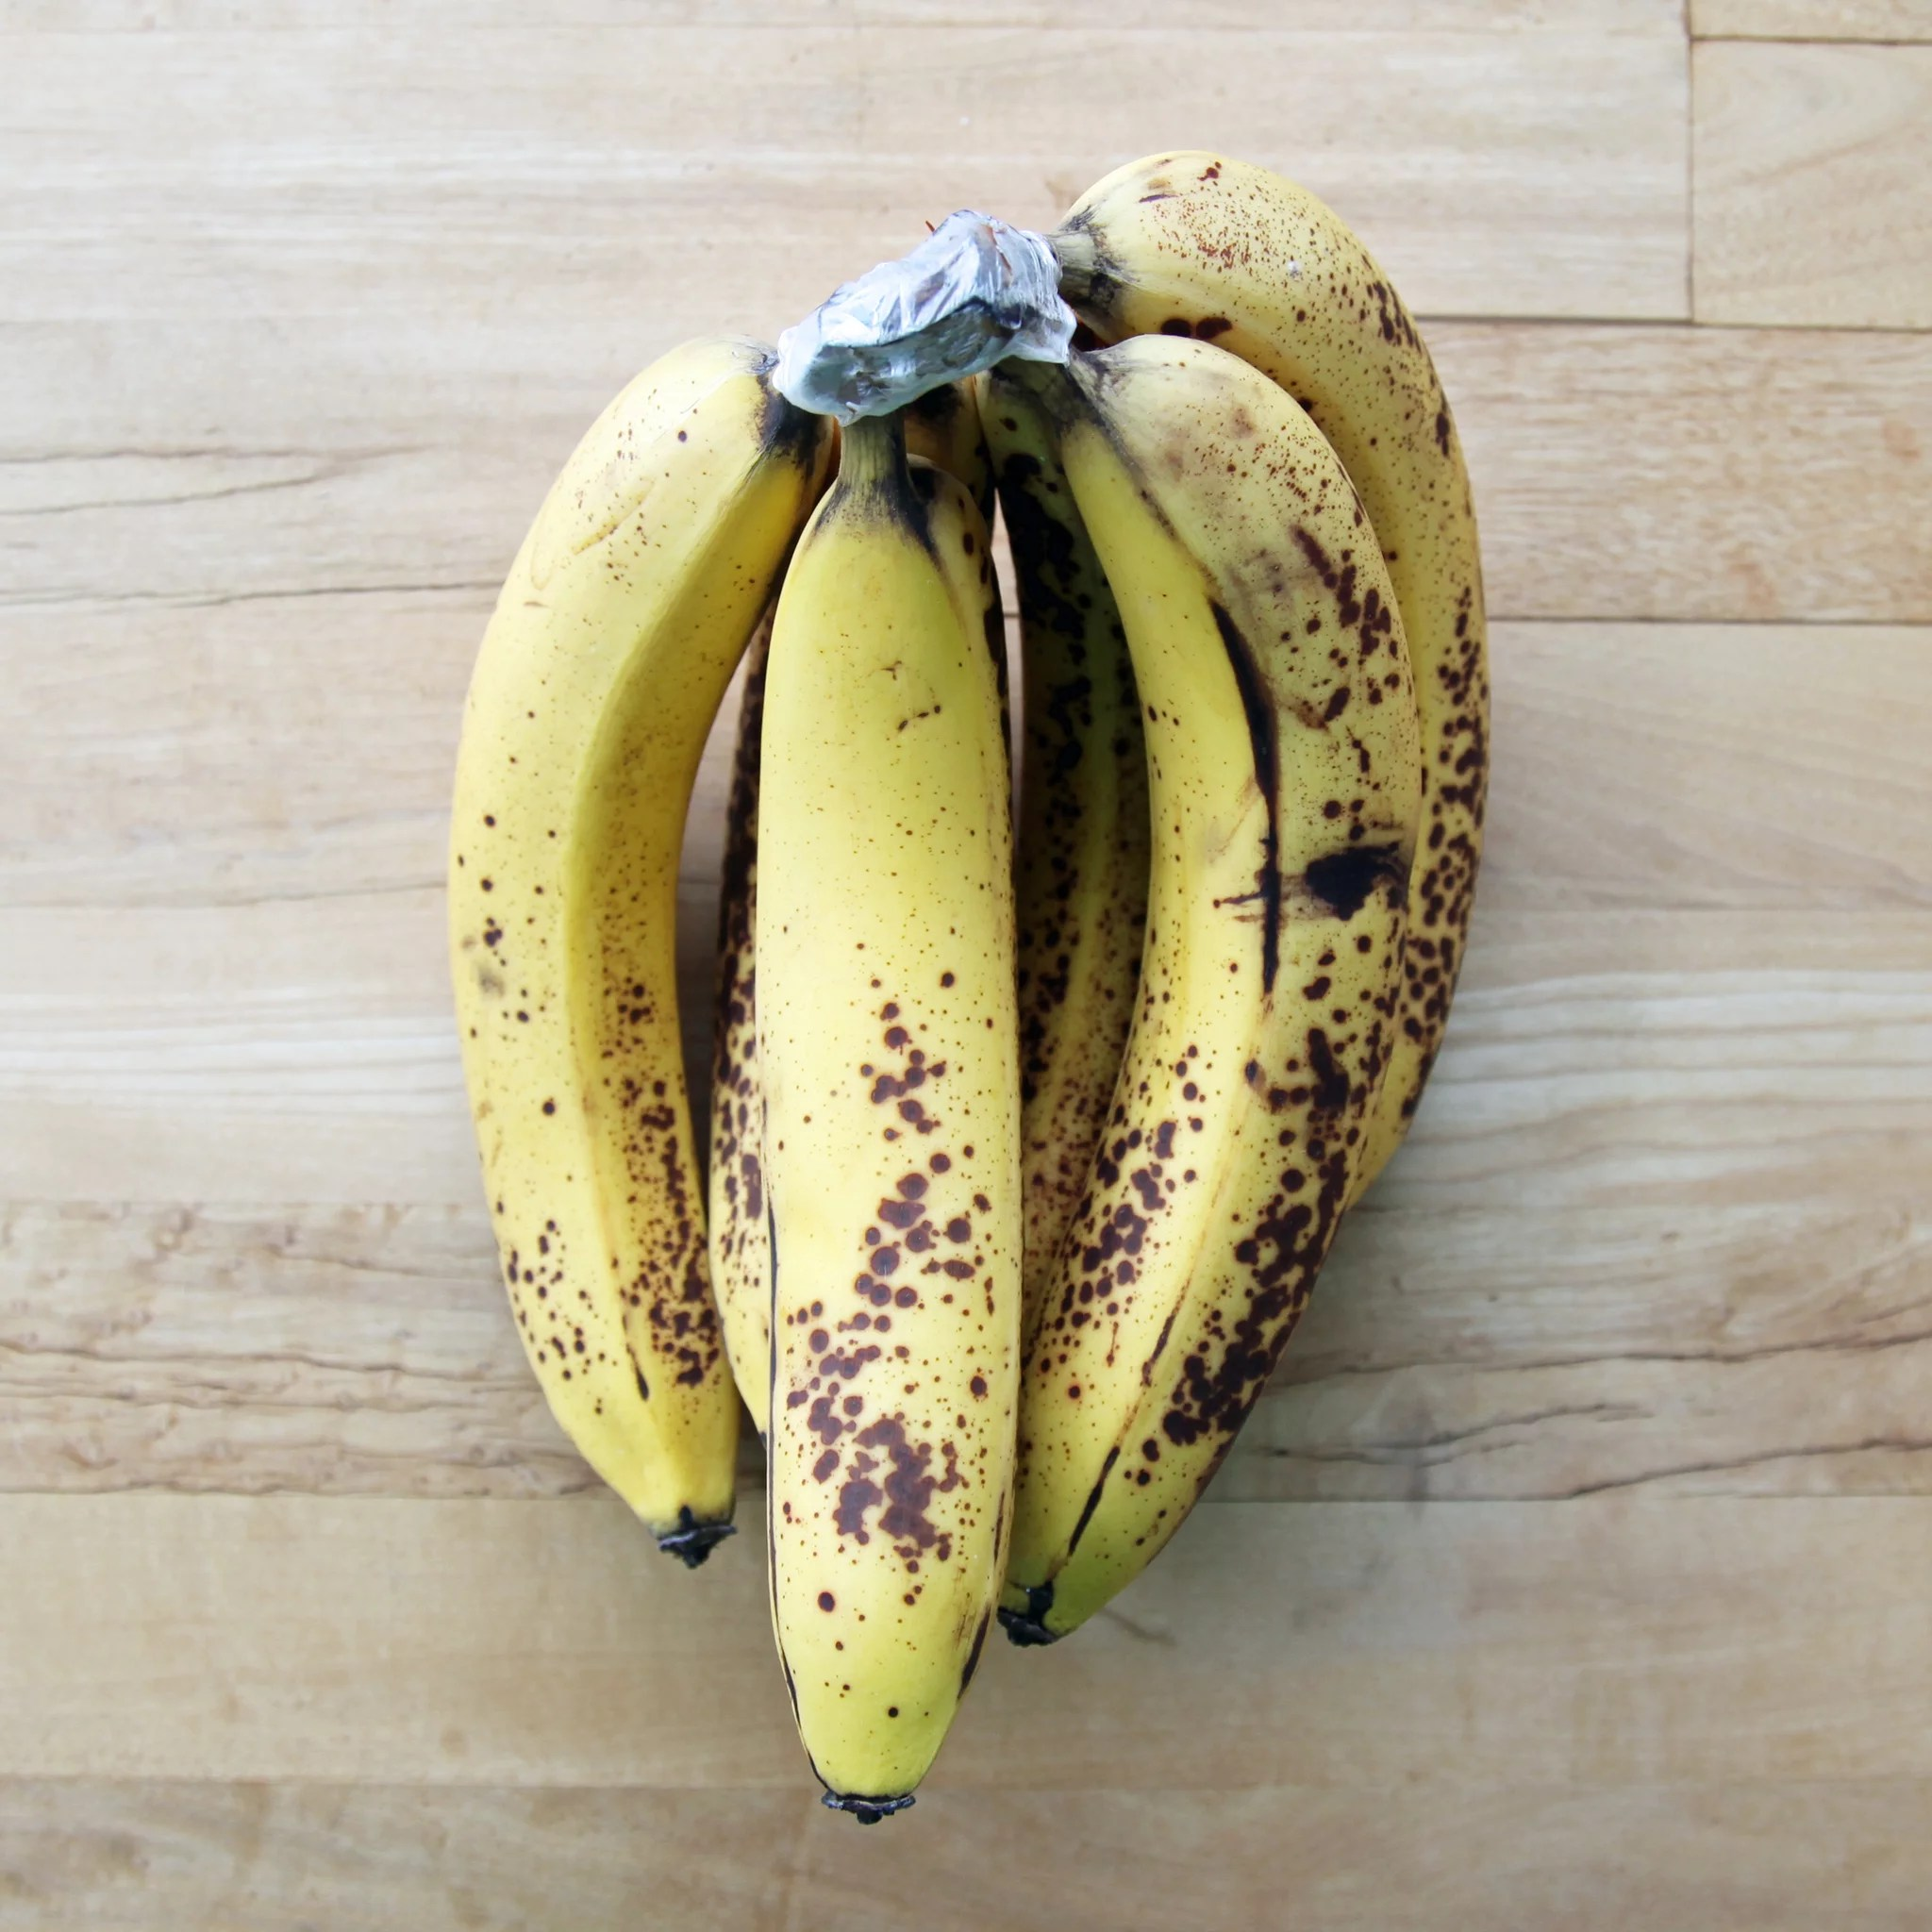 e0b859c7 Bananas - A Better Way to Freeze Bananas For Smoothies, Banana Bread, and More